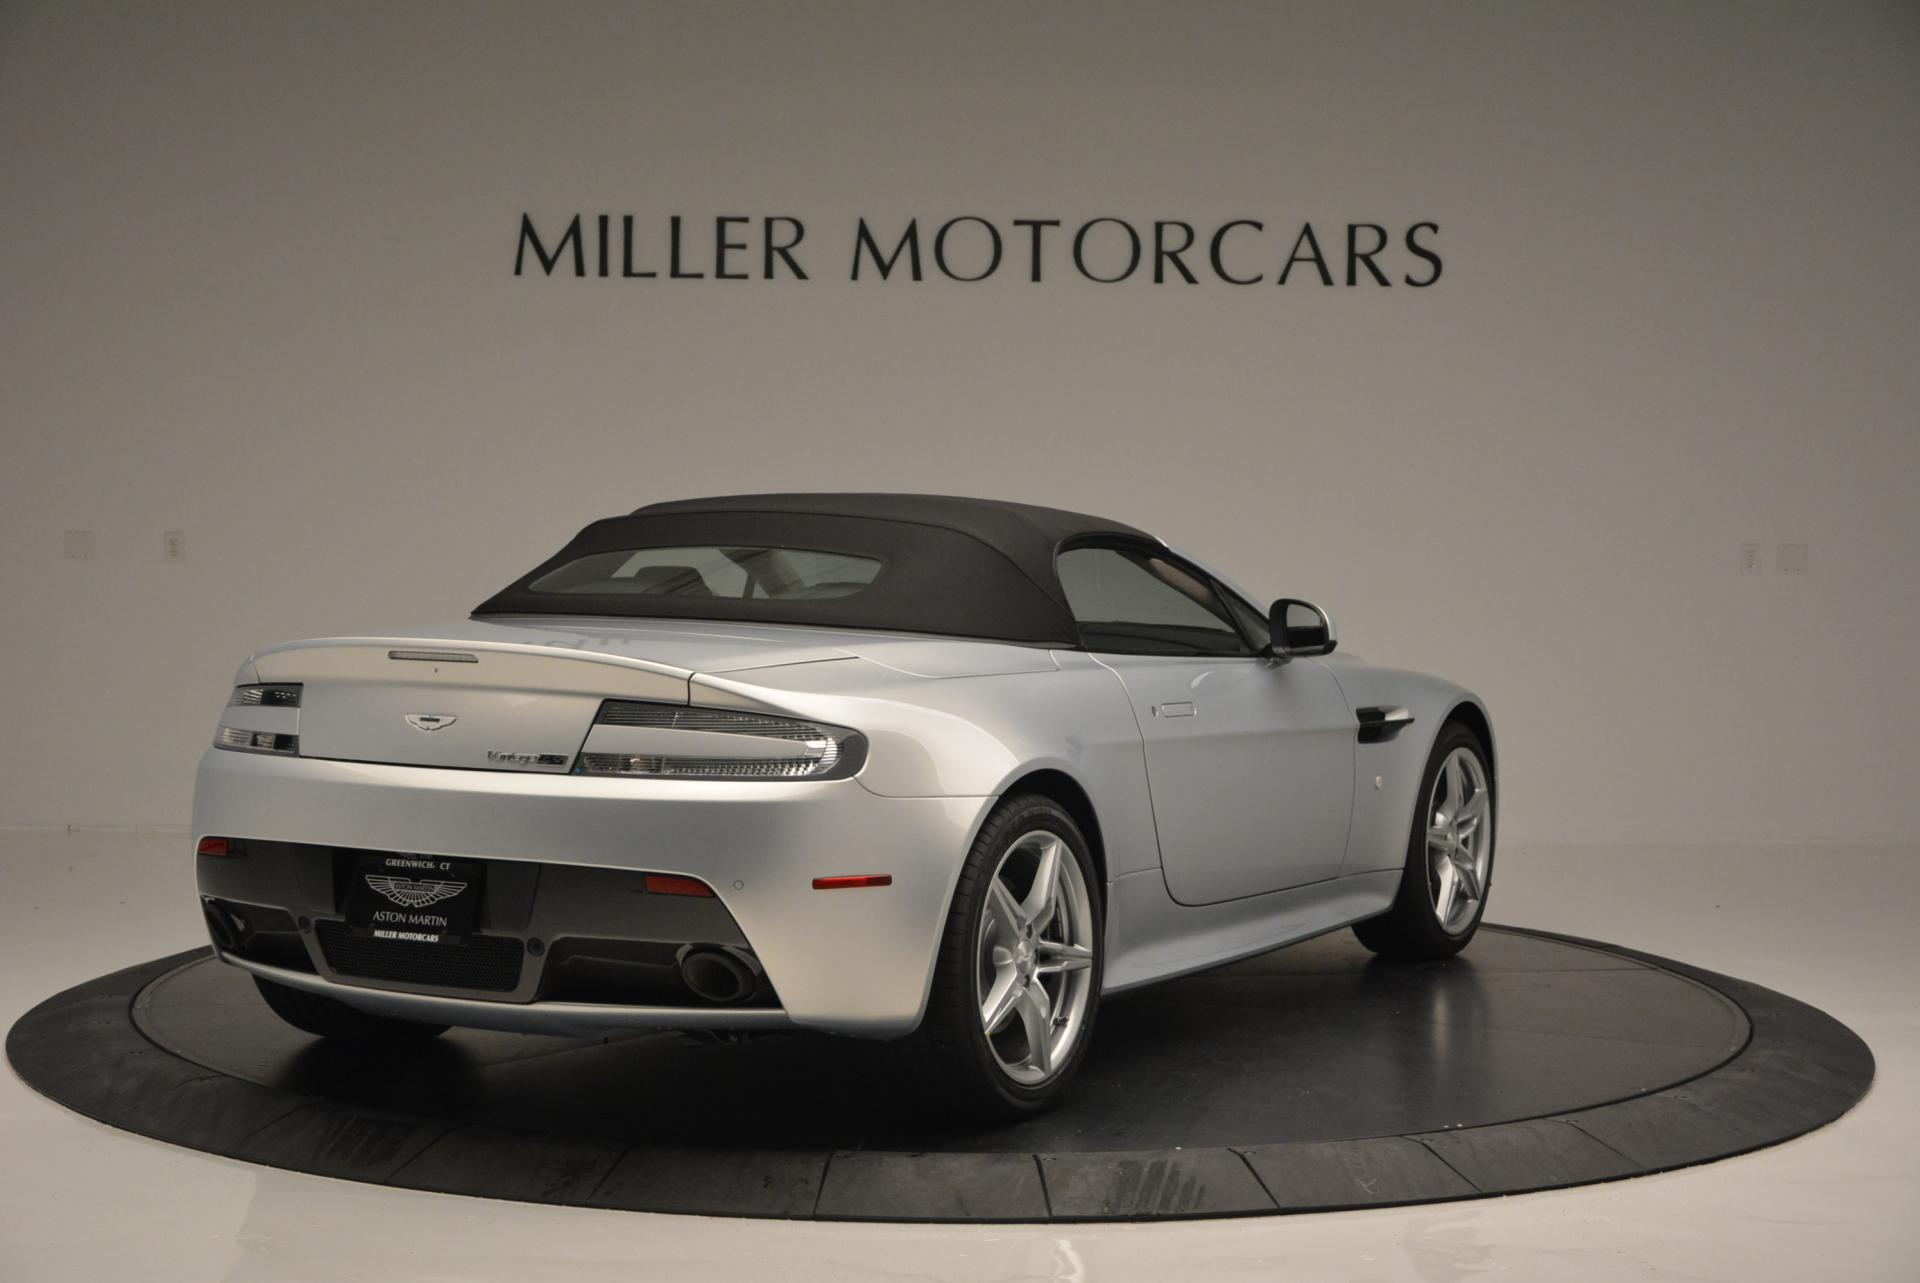 New 2016 Aston Martin V8 Vantage GTS Roadster For Sale 0 In Greenwich, CT